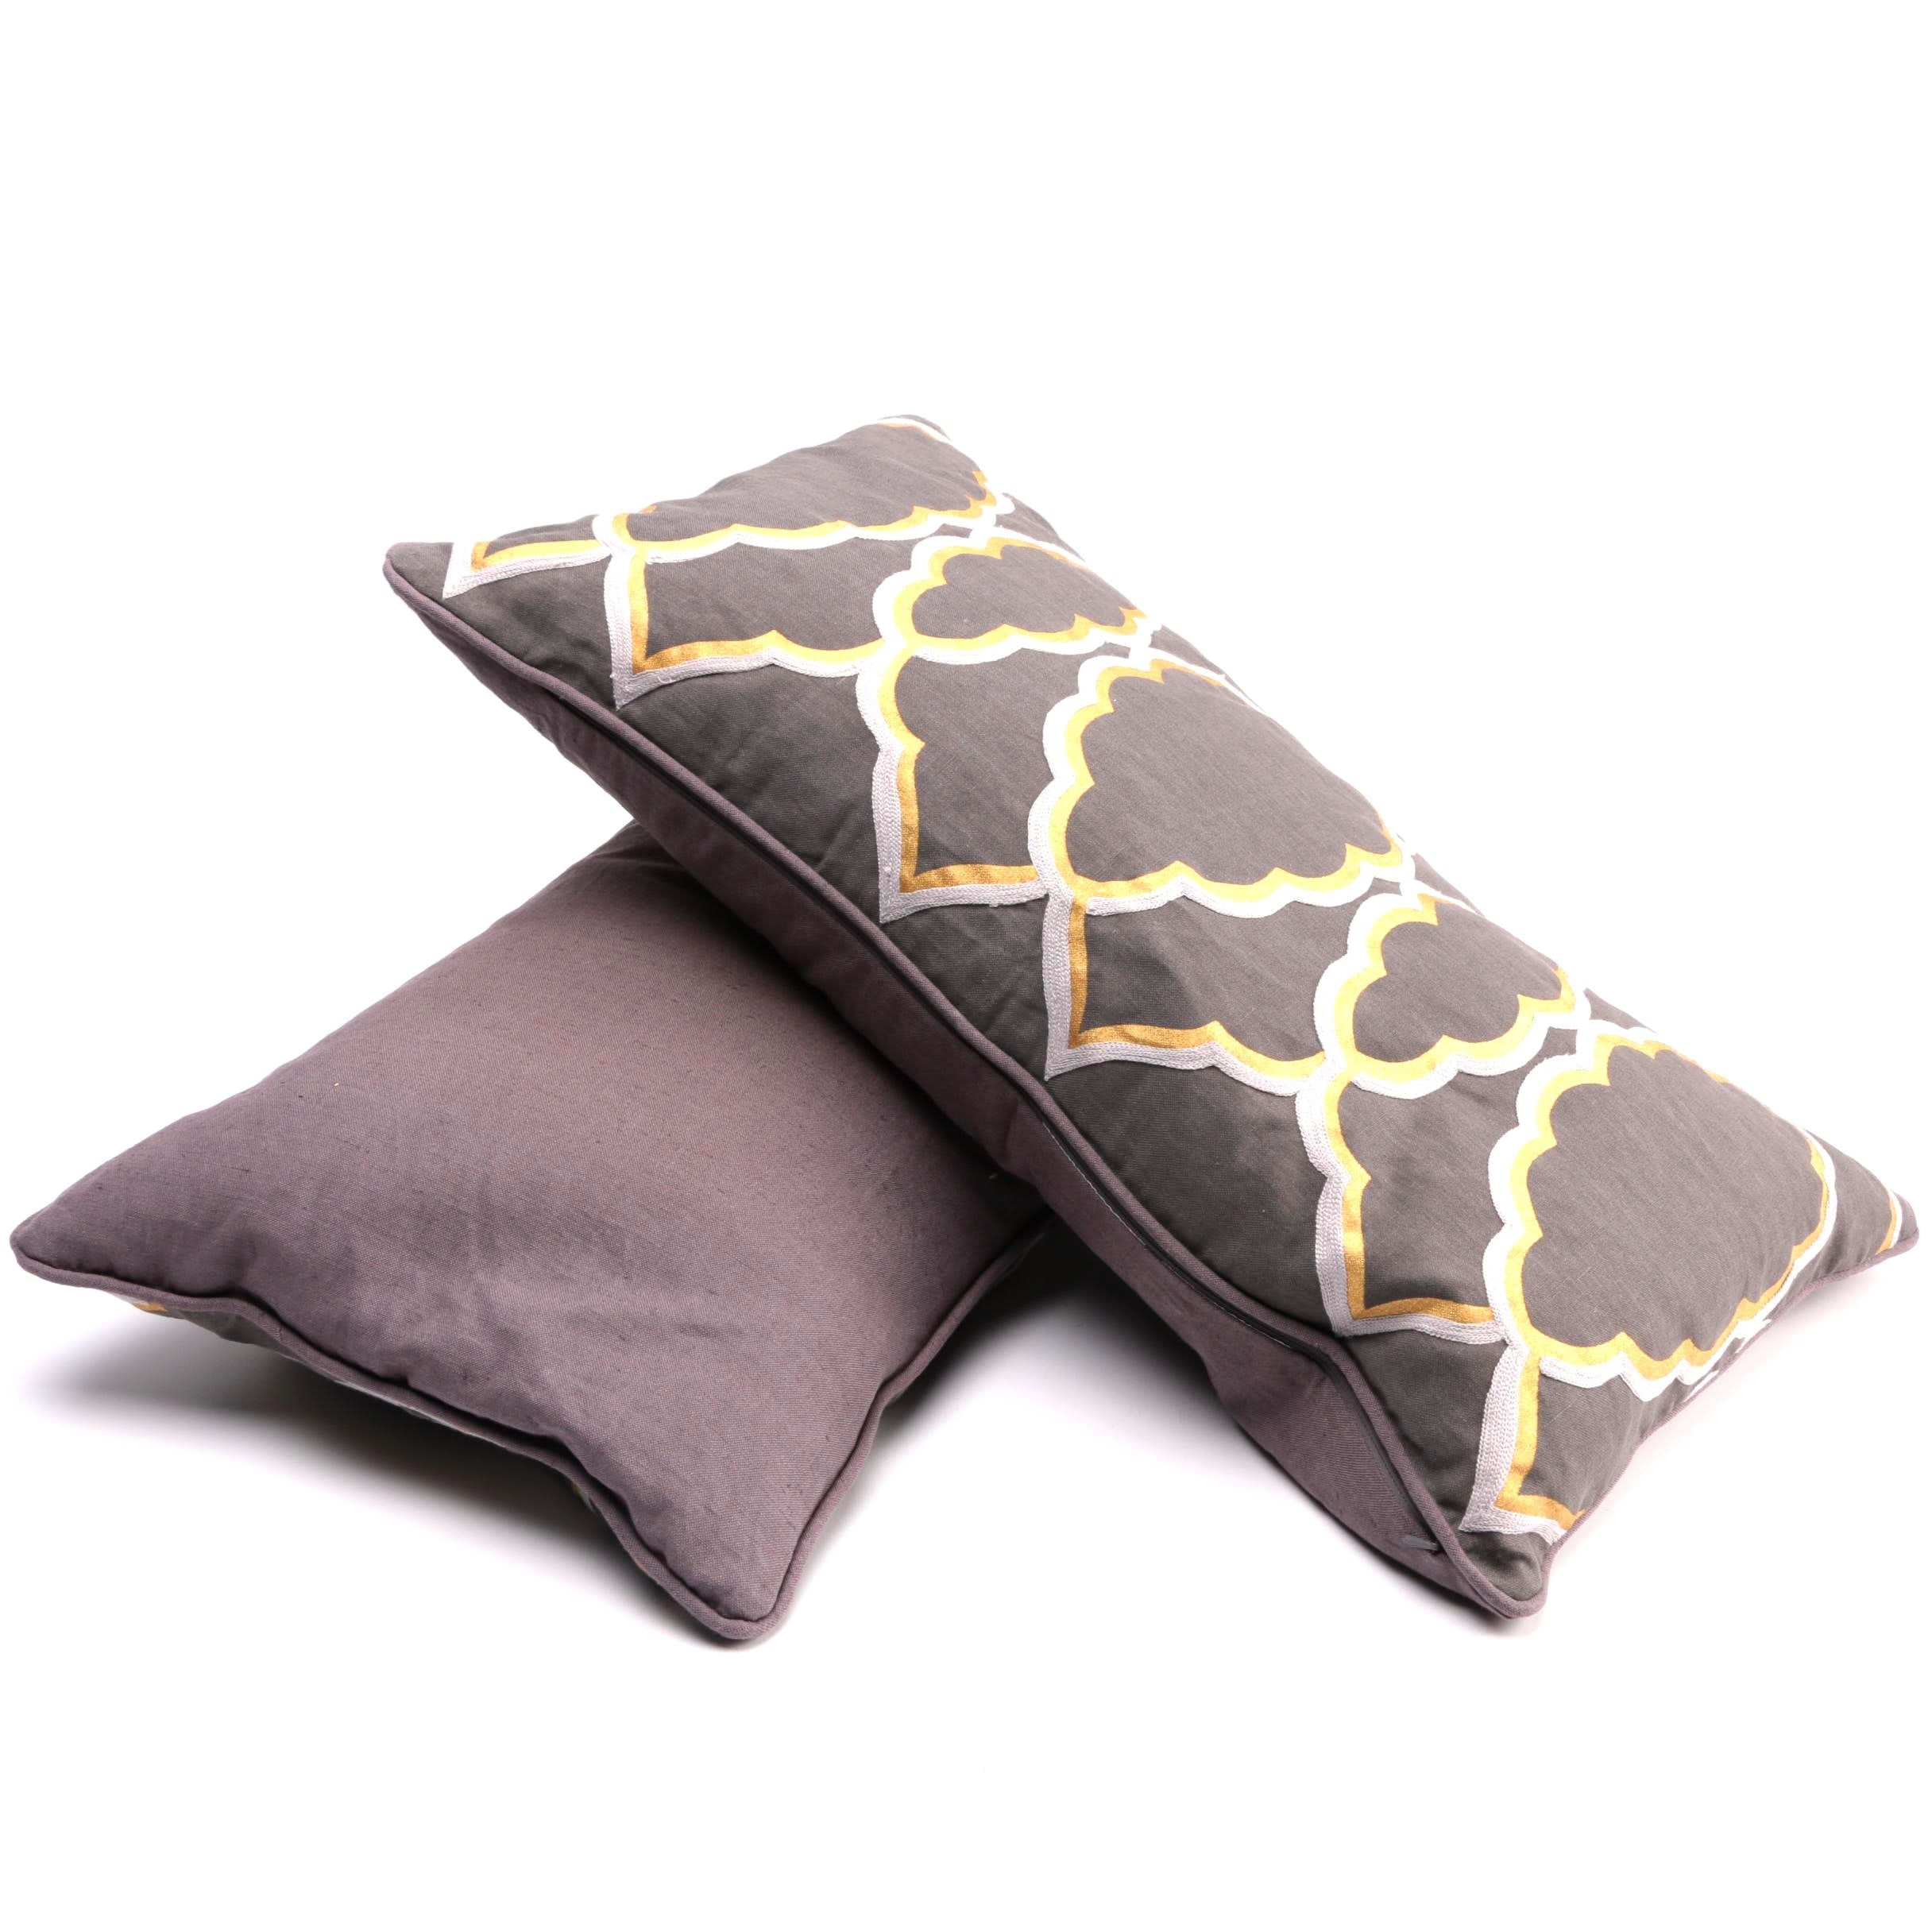 Brown and Gold Tone Embroidered Lumbar Pillows